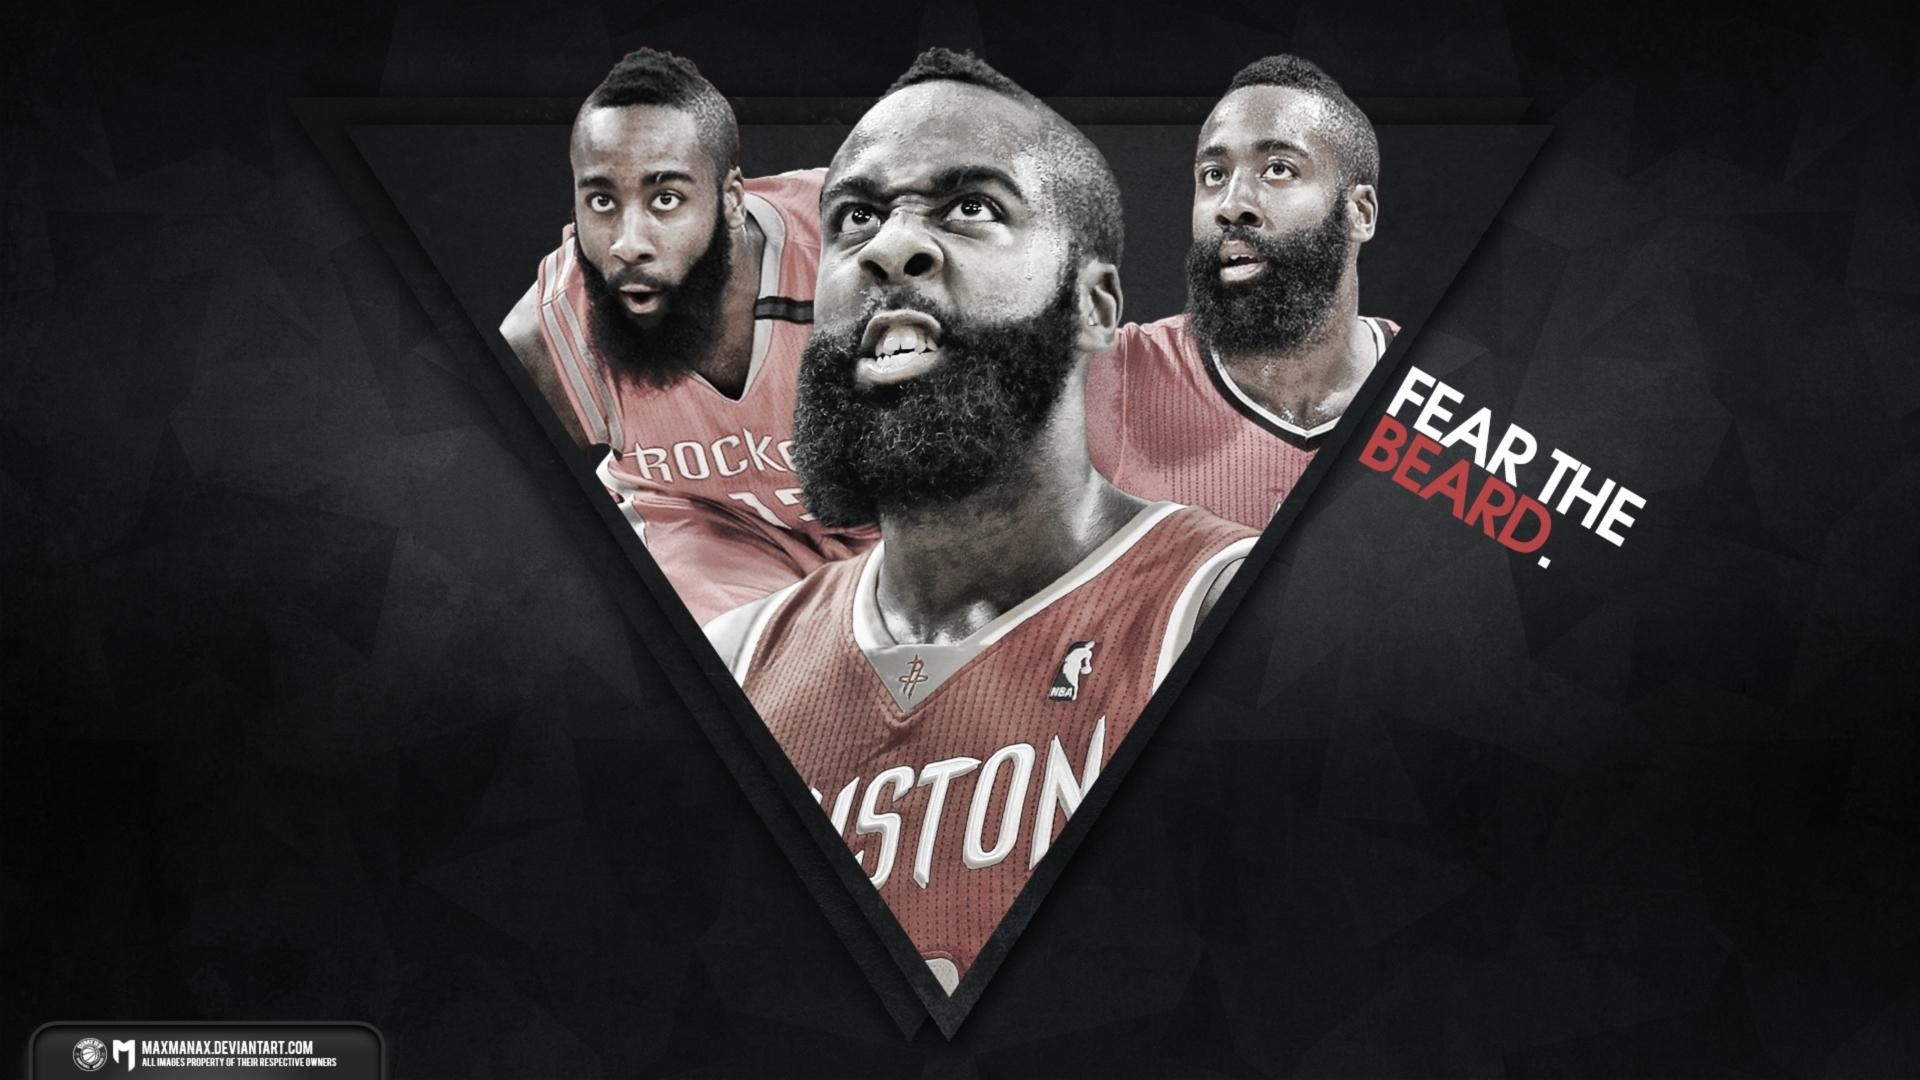 James Harden wallpapers for iphone